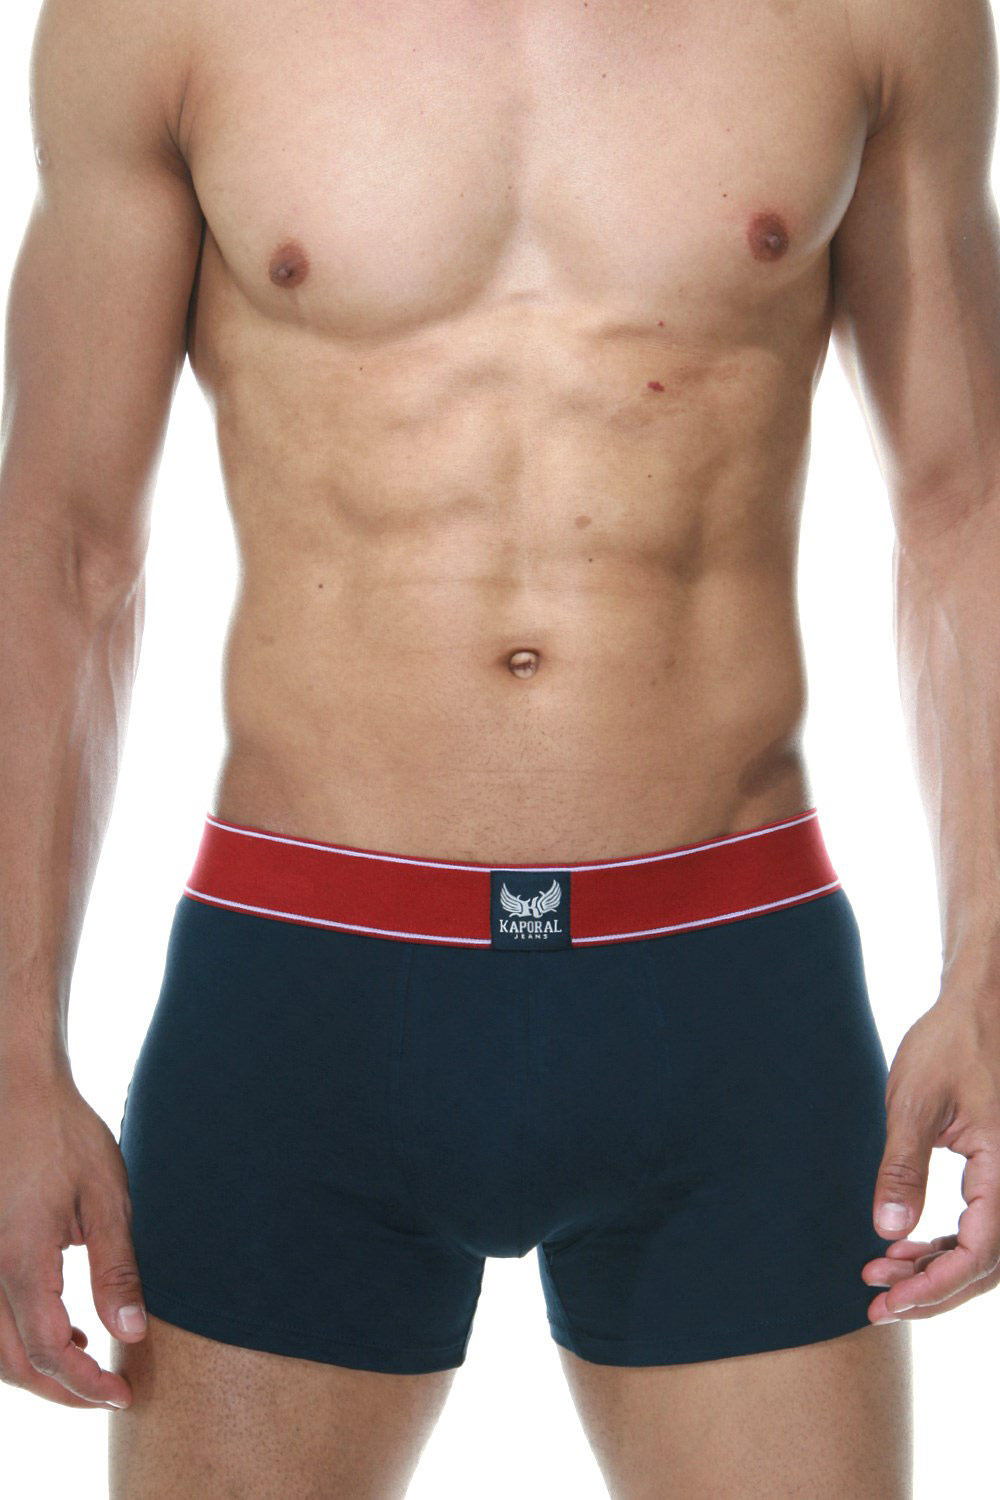 KAPORAL trunks at oboy.com